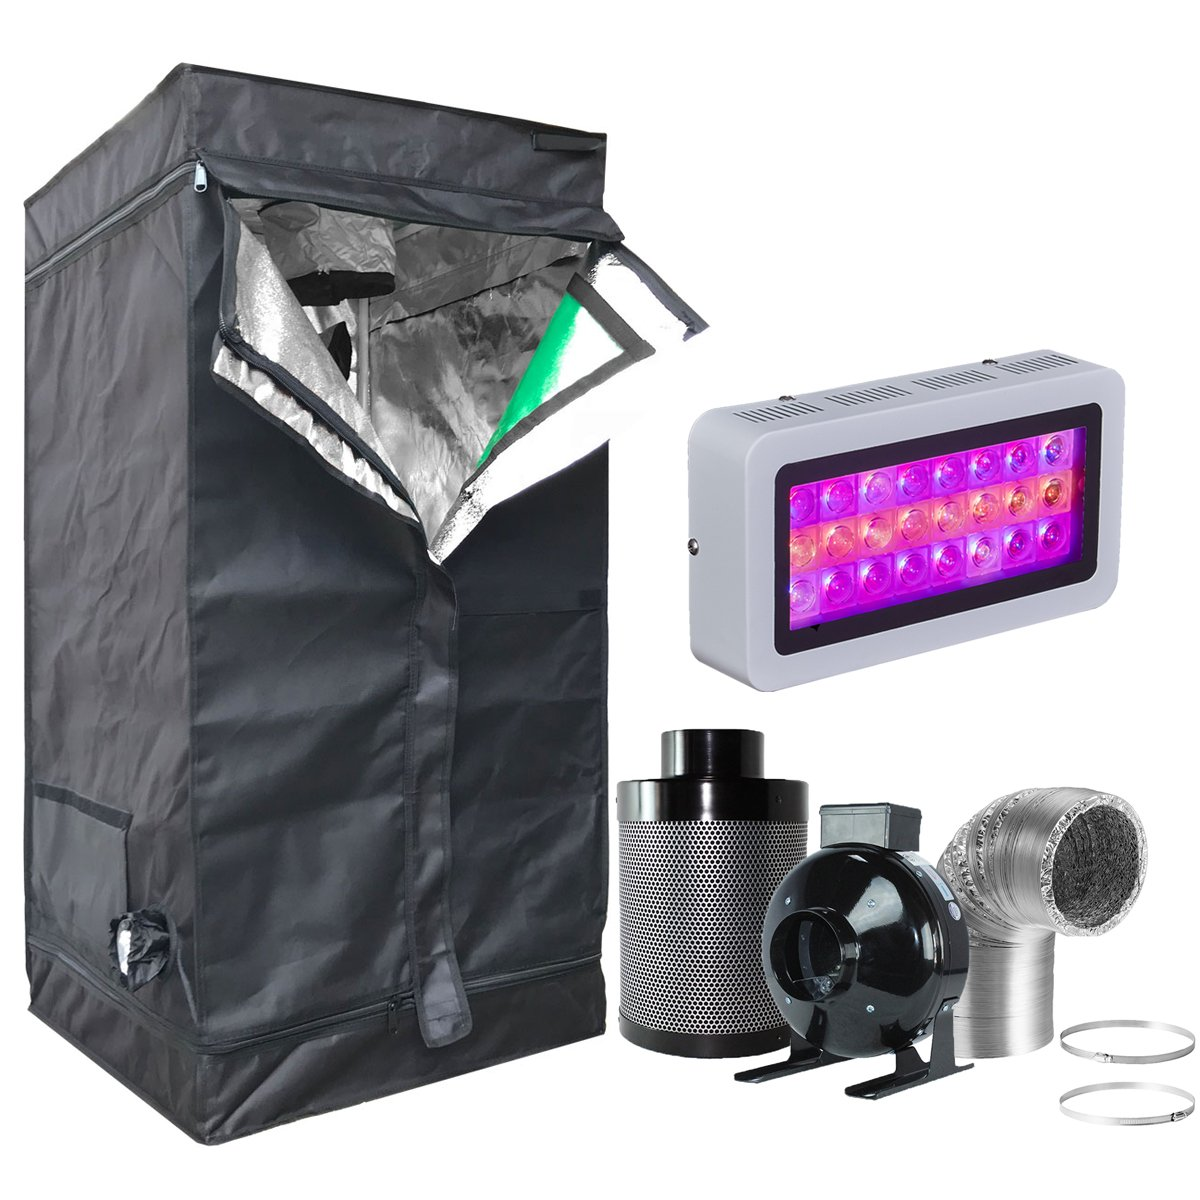 Hongruilite 300w/600w LED Grow Light+Multi-sized Grow Tent+4'' Inline Fan Carbon Air Filter Ducting Combo for Hydroponic Indoor Plant Growing System (300W LED+24''X24''X48''Grow Tent(T)+4''Filter Kit) by Hongruilite